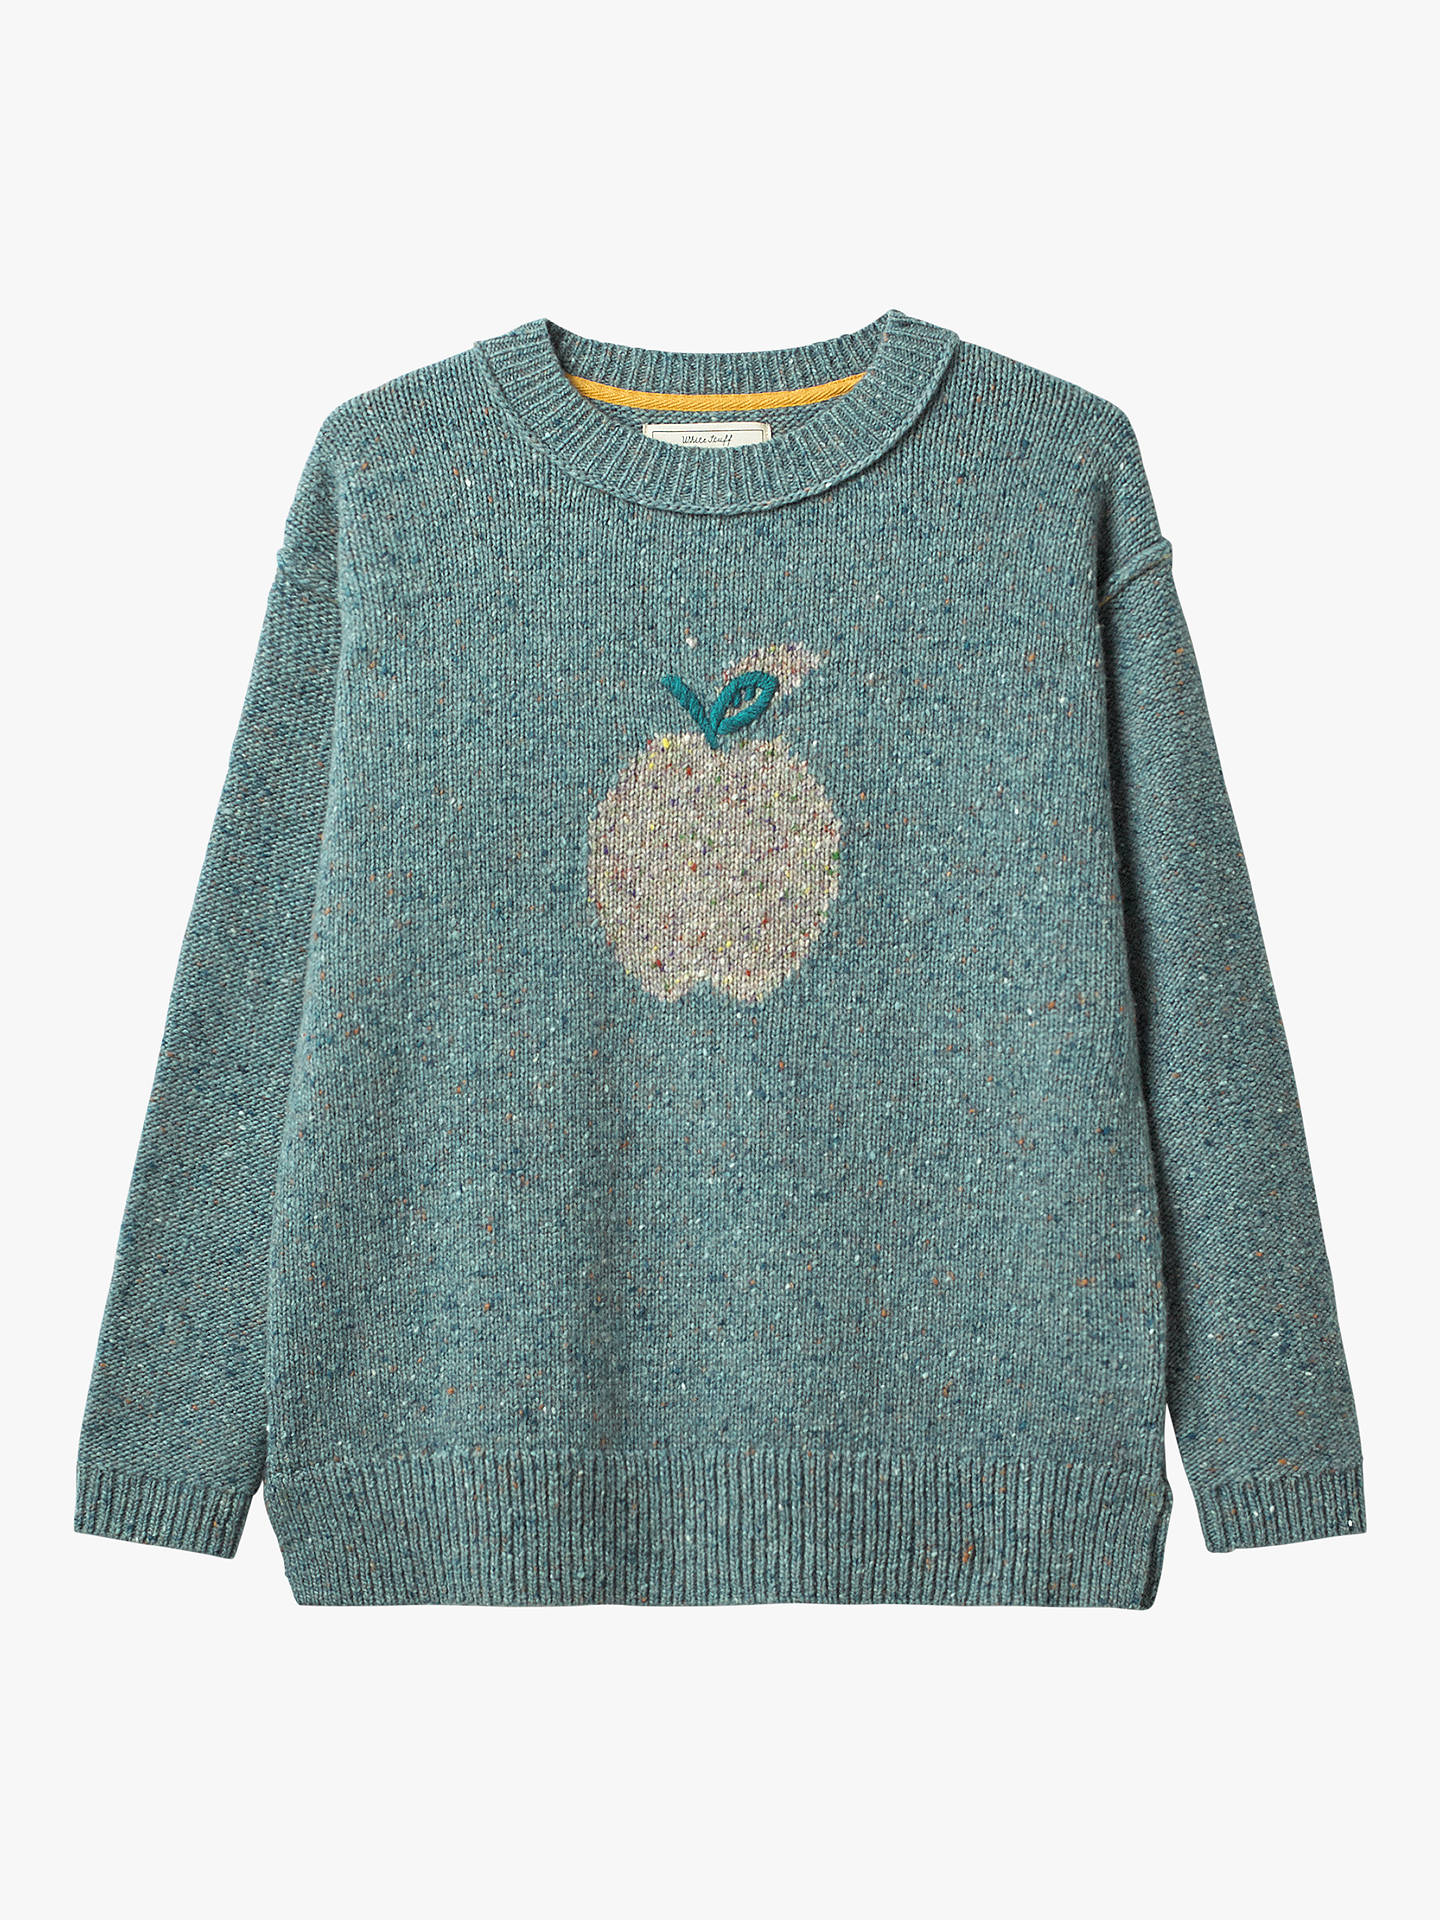 White Stuff Pomme Embroidery Jumper, Seafoam Green at John